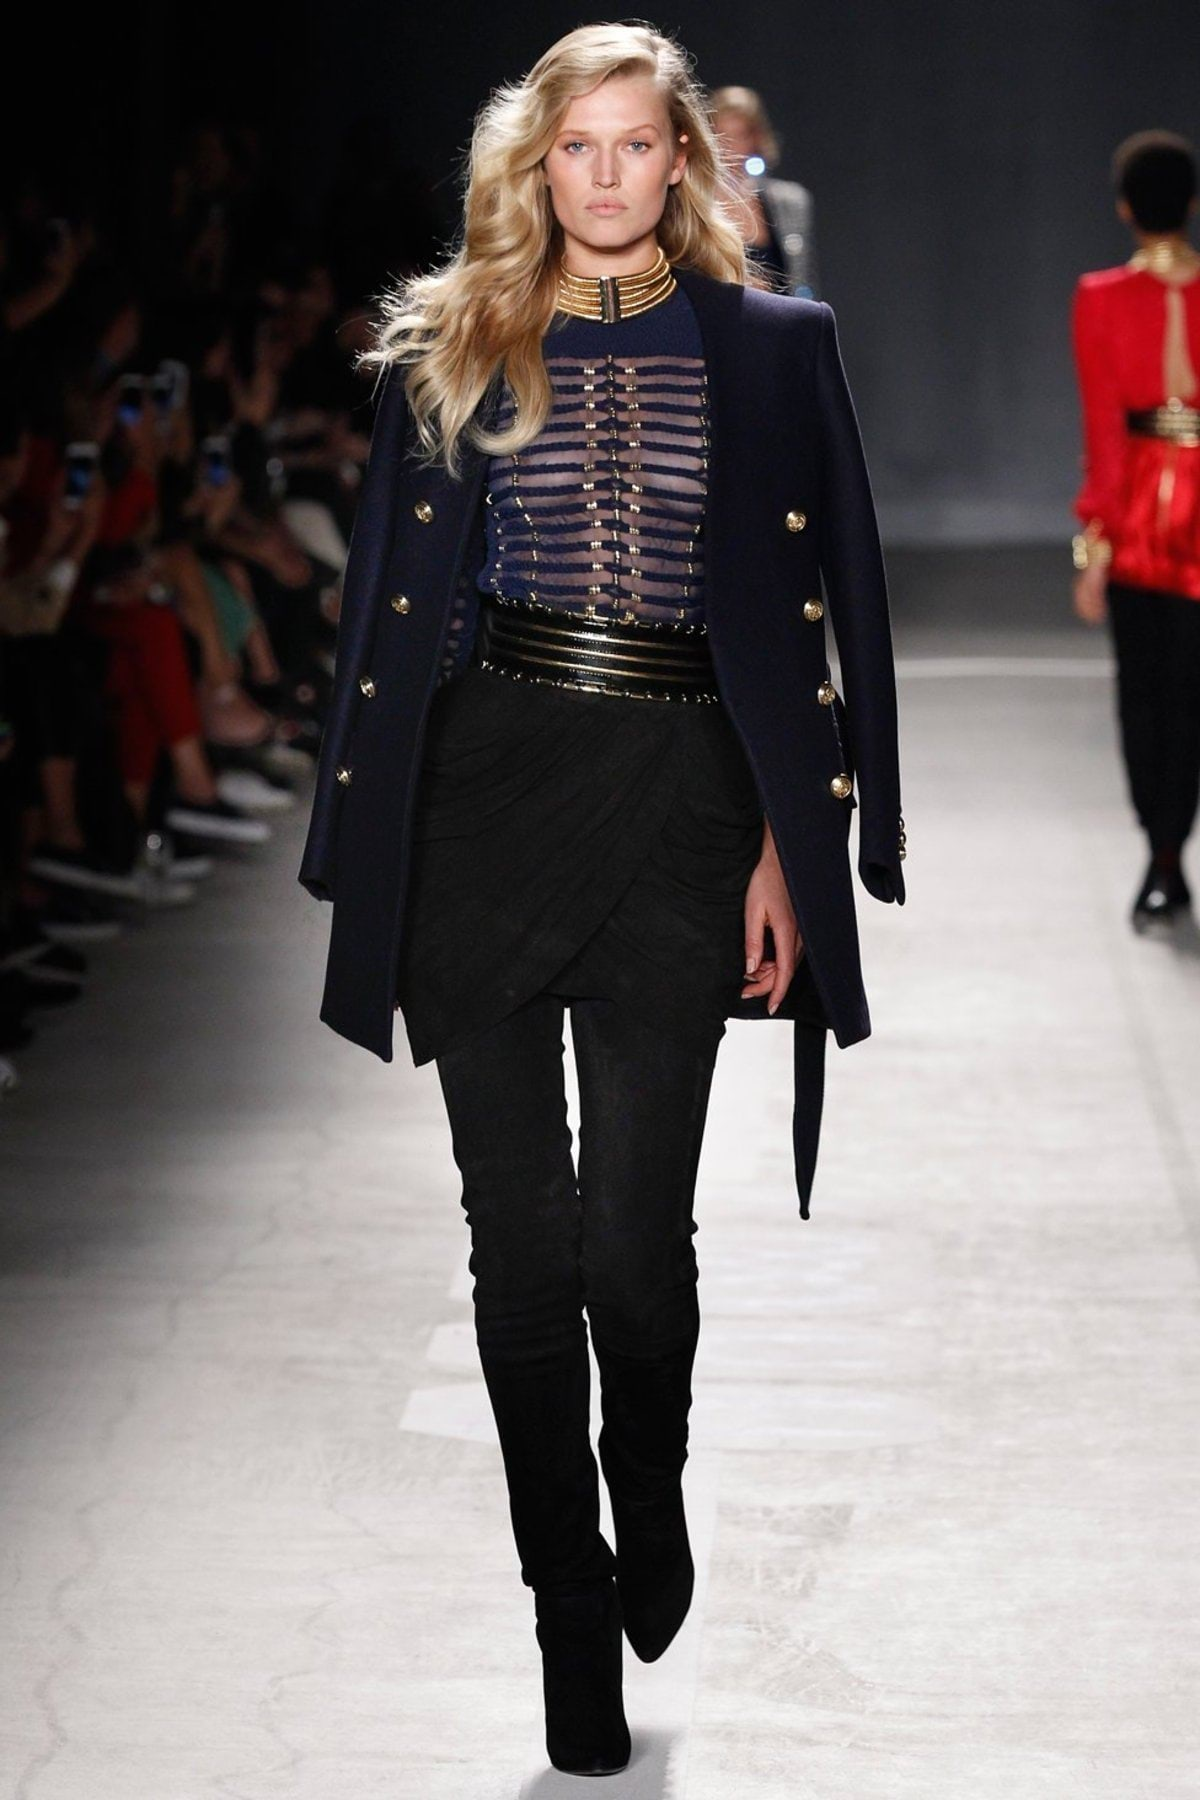 h-and-m-balmain-runway-fall-2016-33